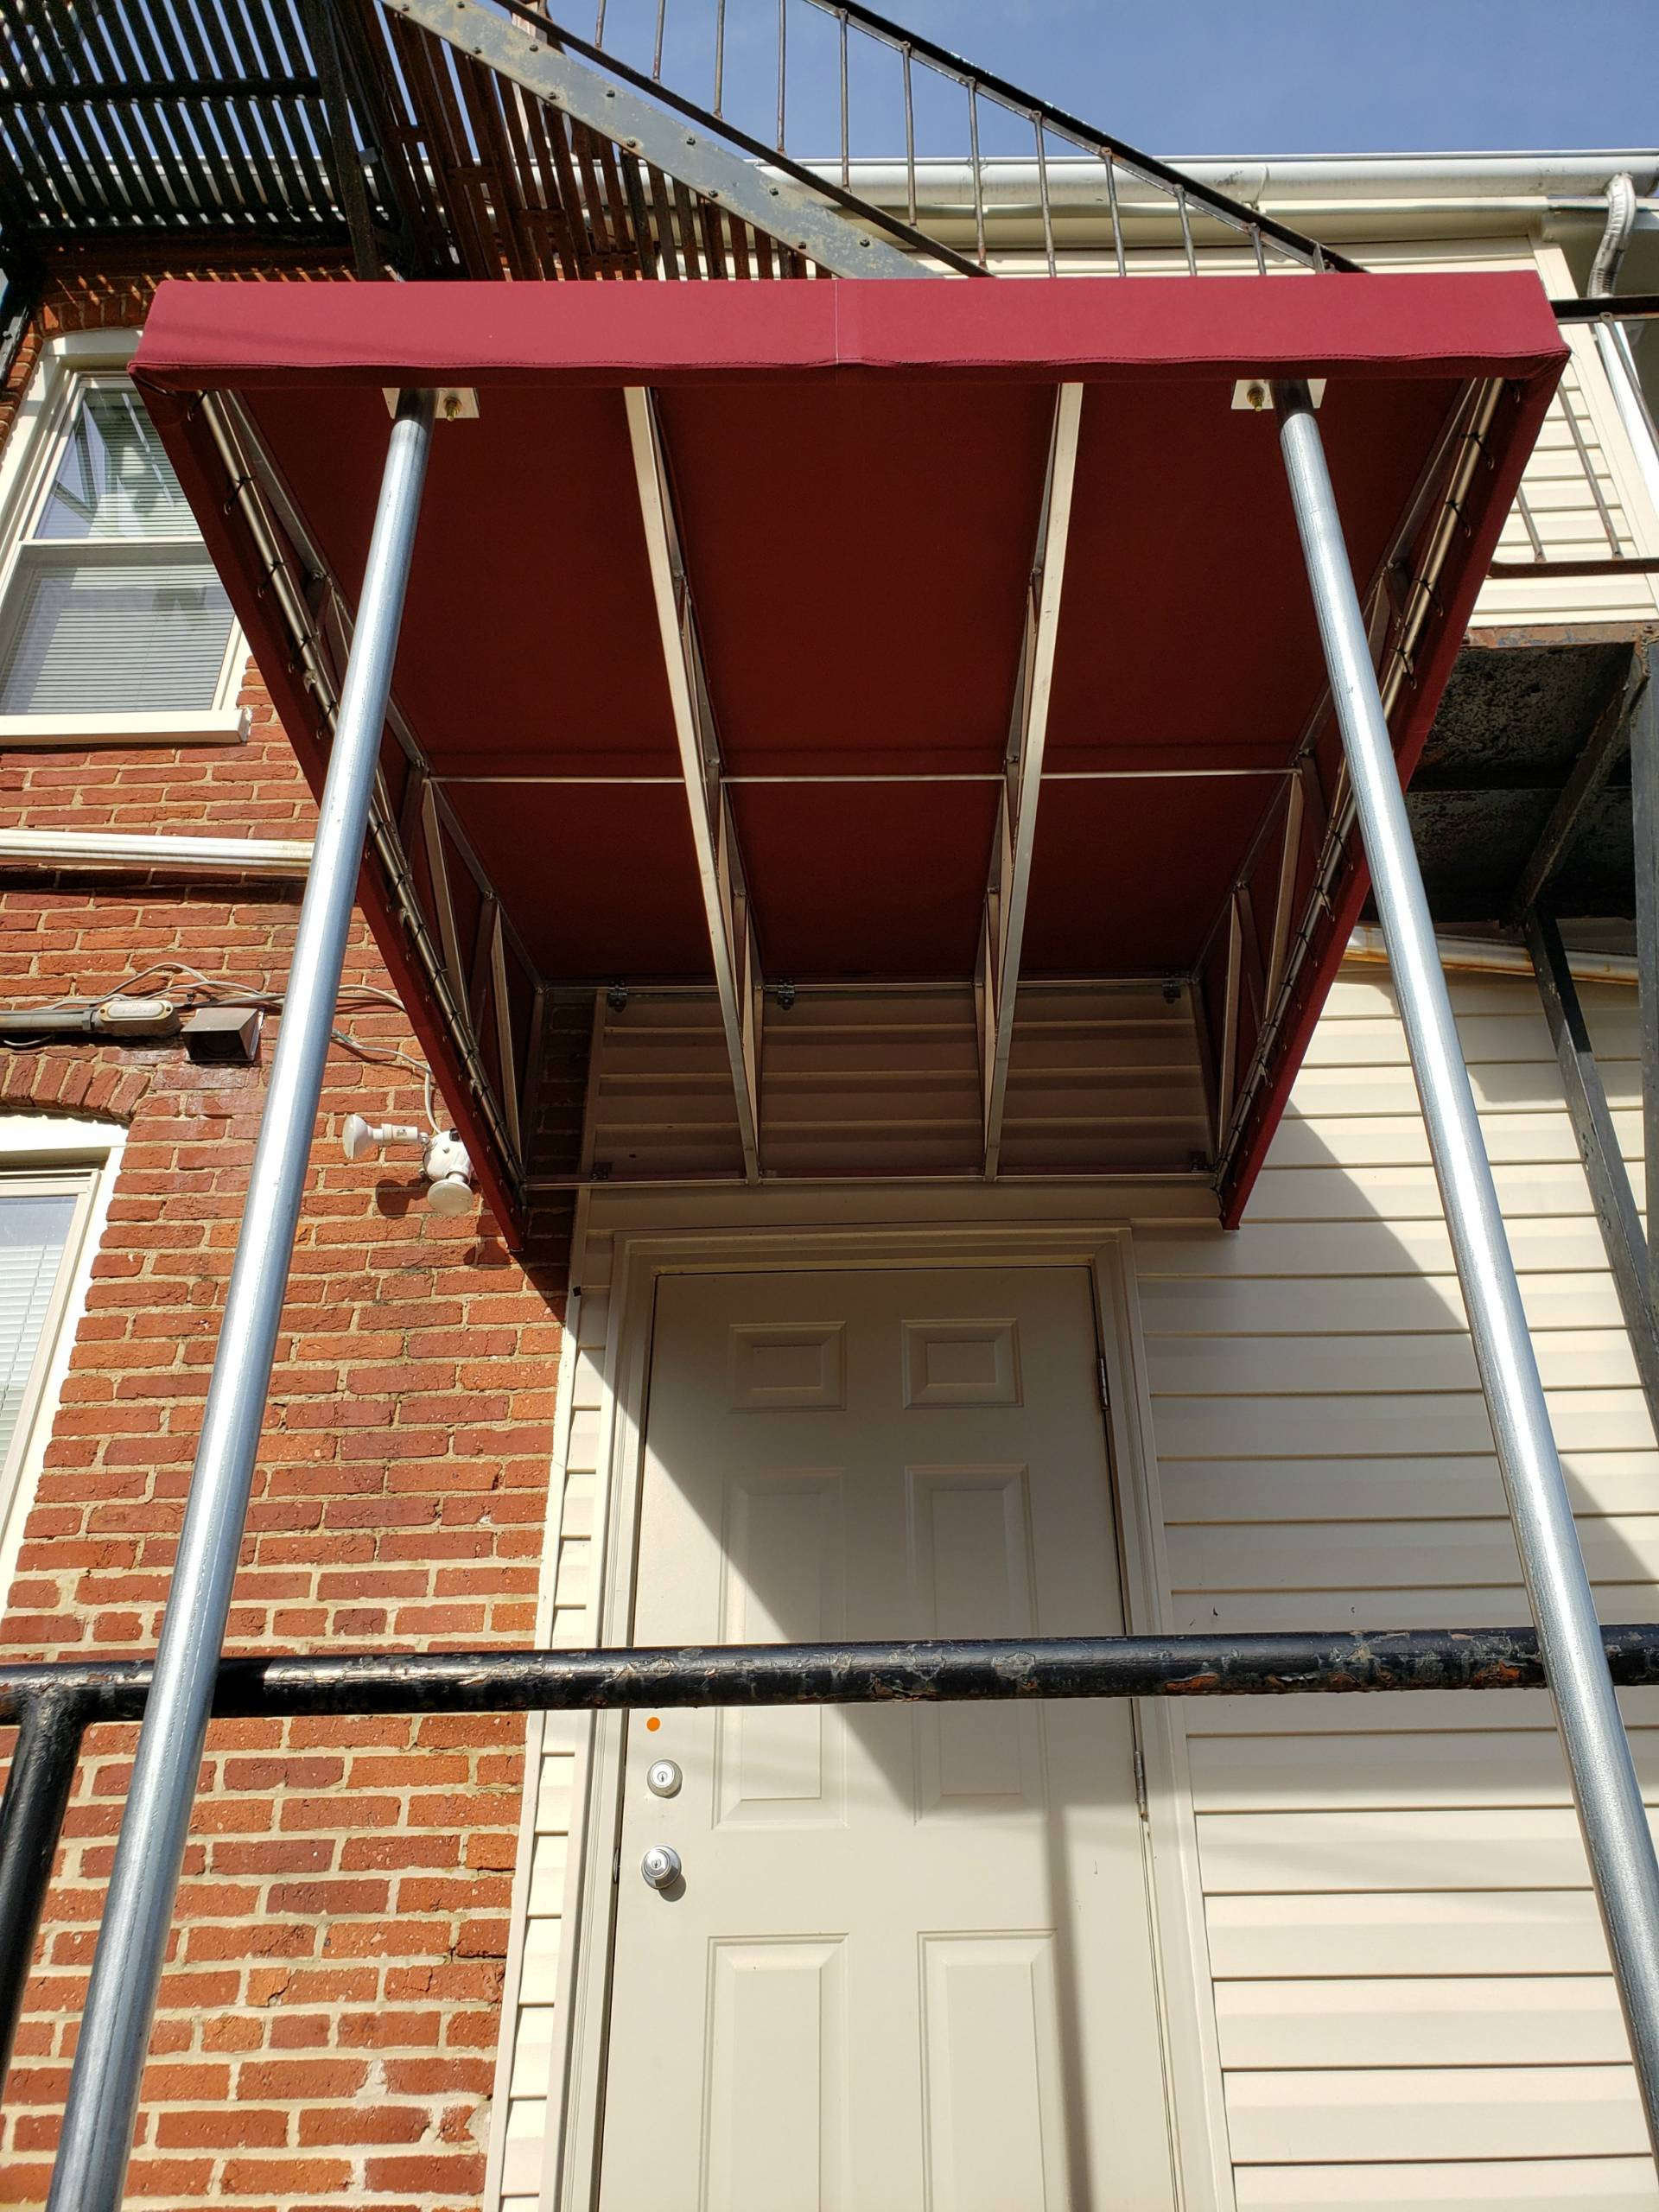 Small shed style entrance awning near Lancaster General ...